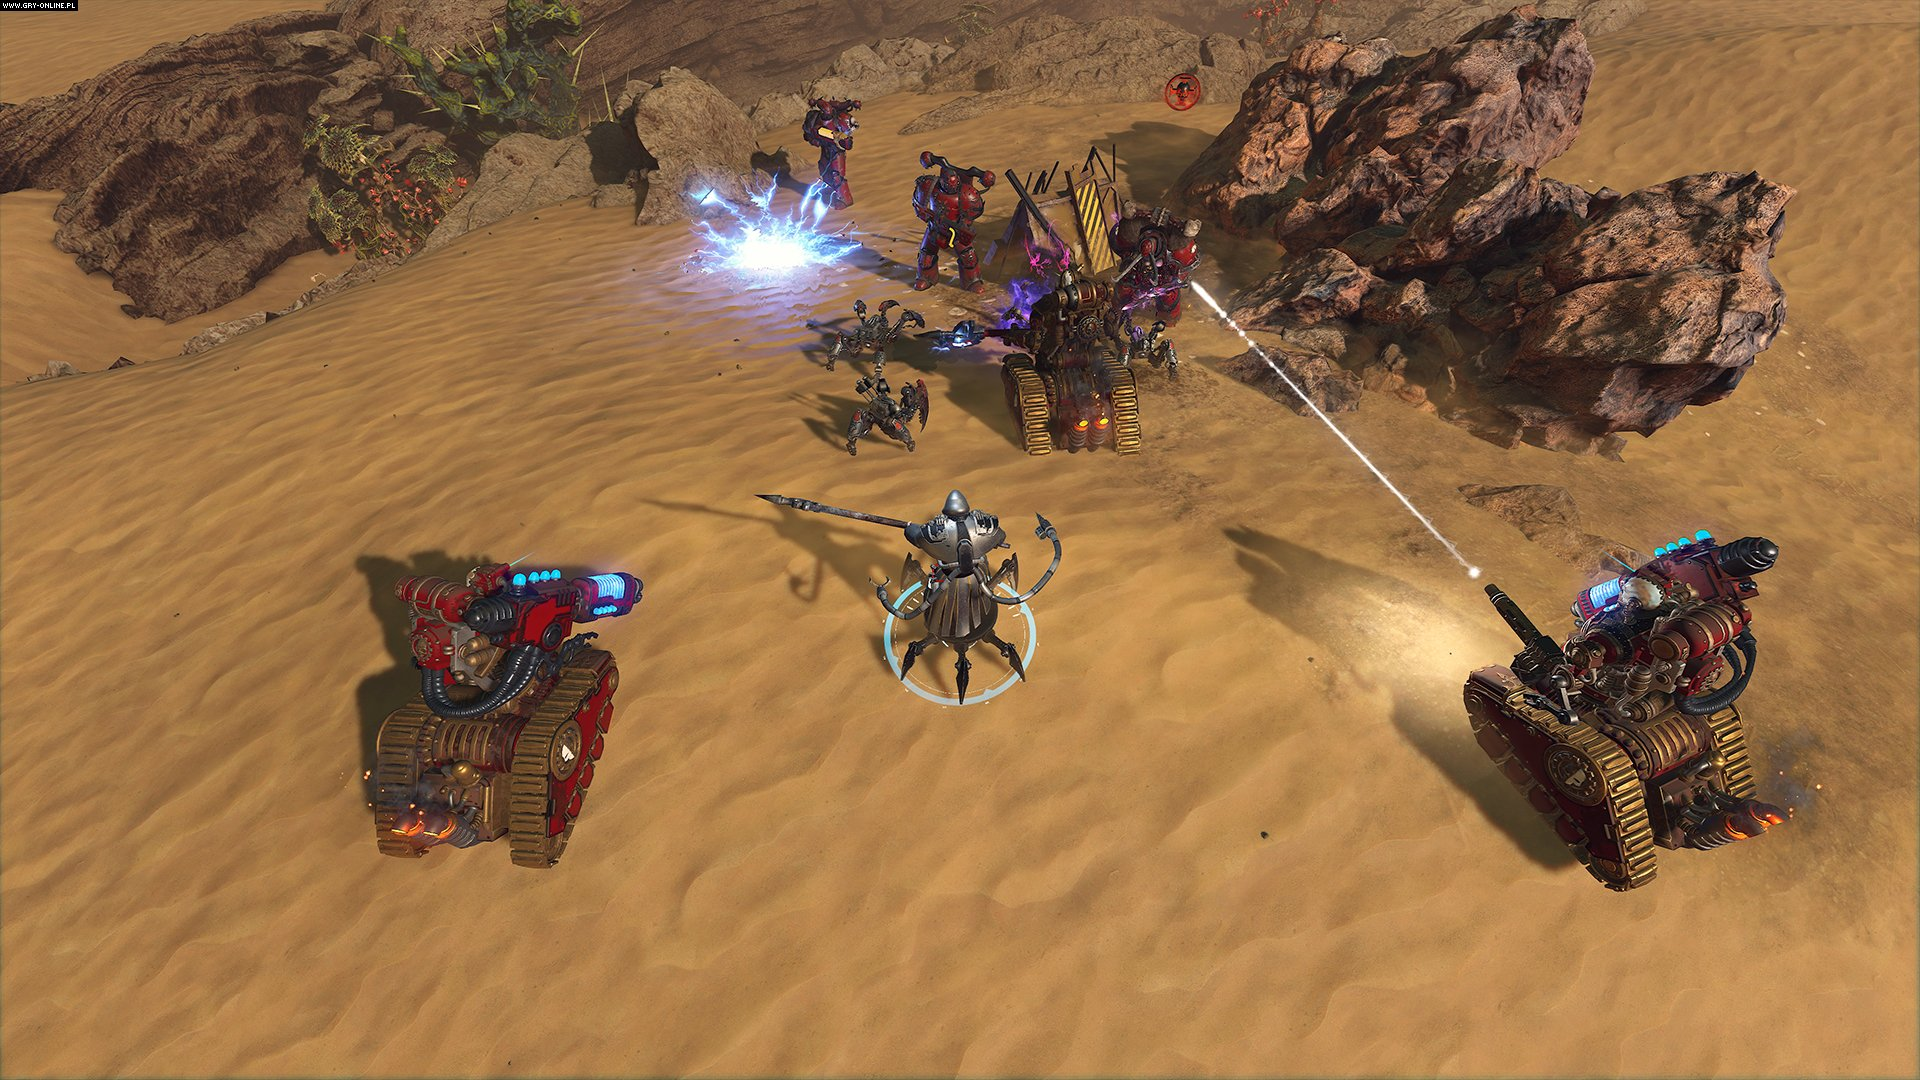 Warhammer 40,000: Inquisitor - Prophecy PC, PS4, XONE Gry Screen 3/9, NeocoreGames